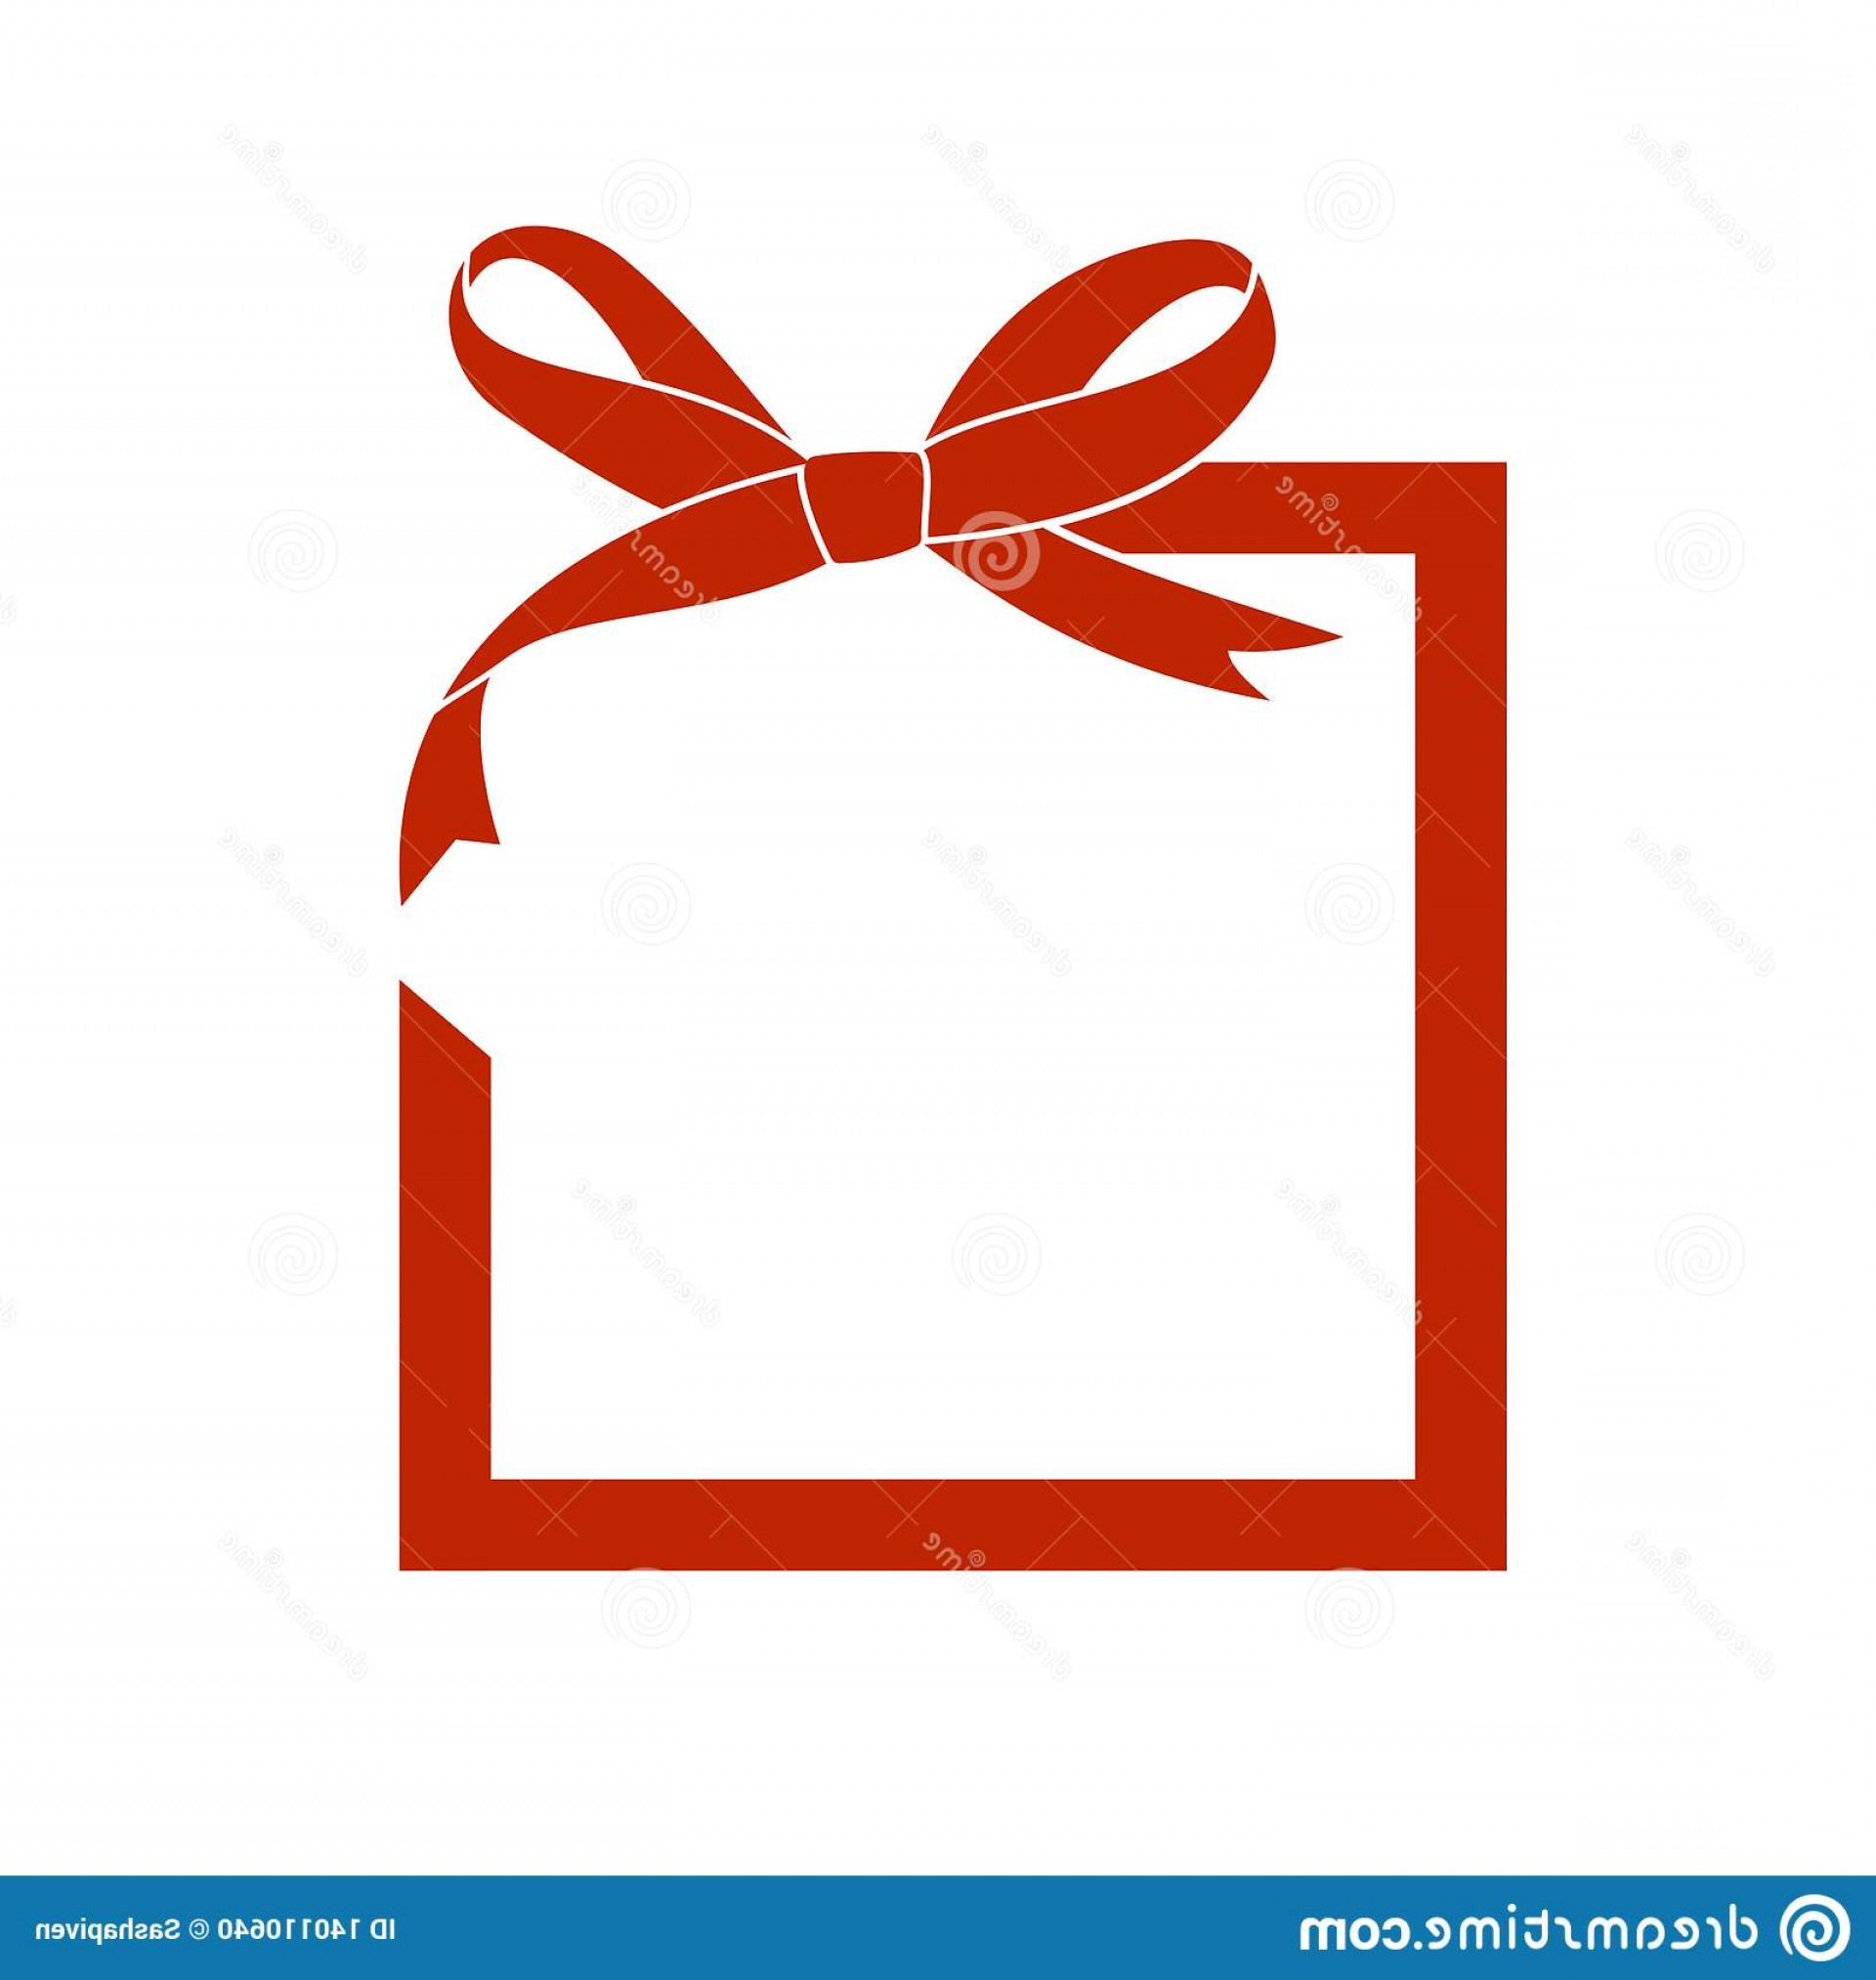 Vector Frame Gift: Vector Frame Gift Red Bow Ribbon Holiday Decorations Empty Sale Design Template Image Image